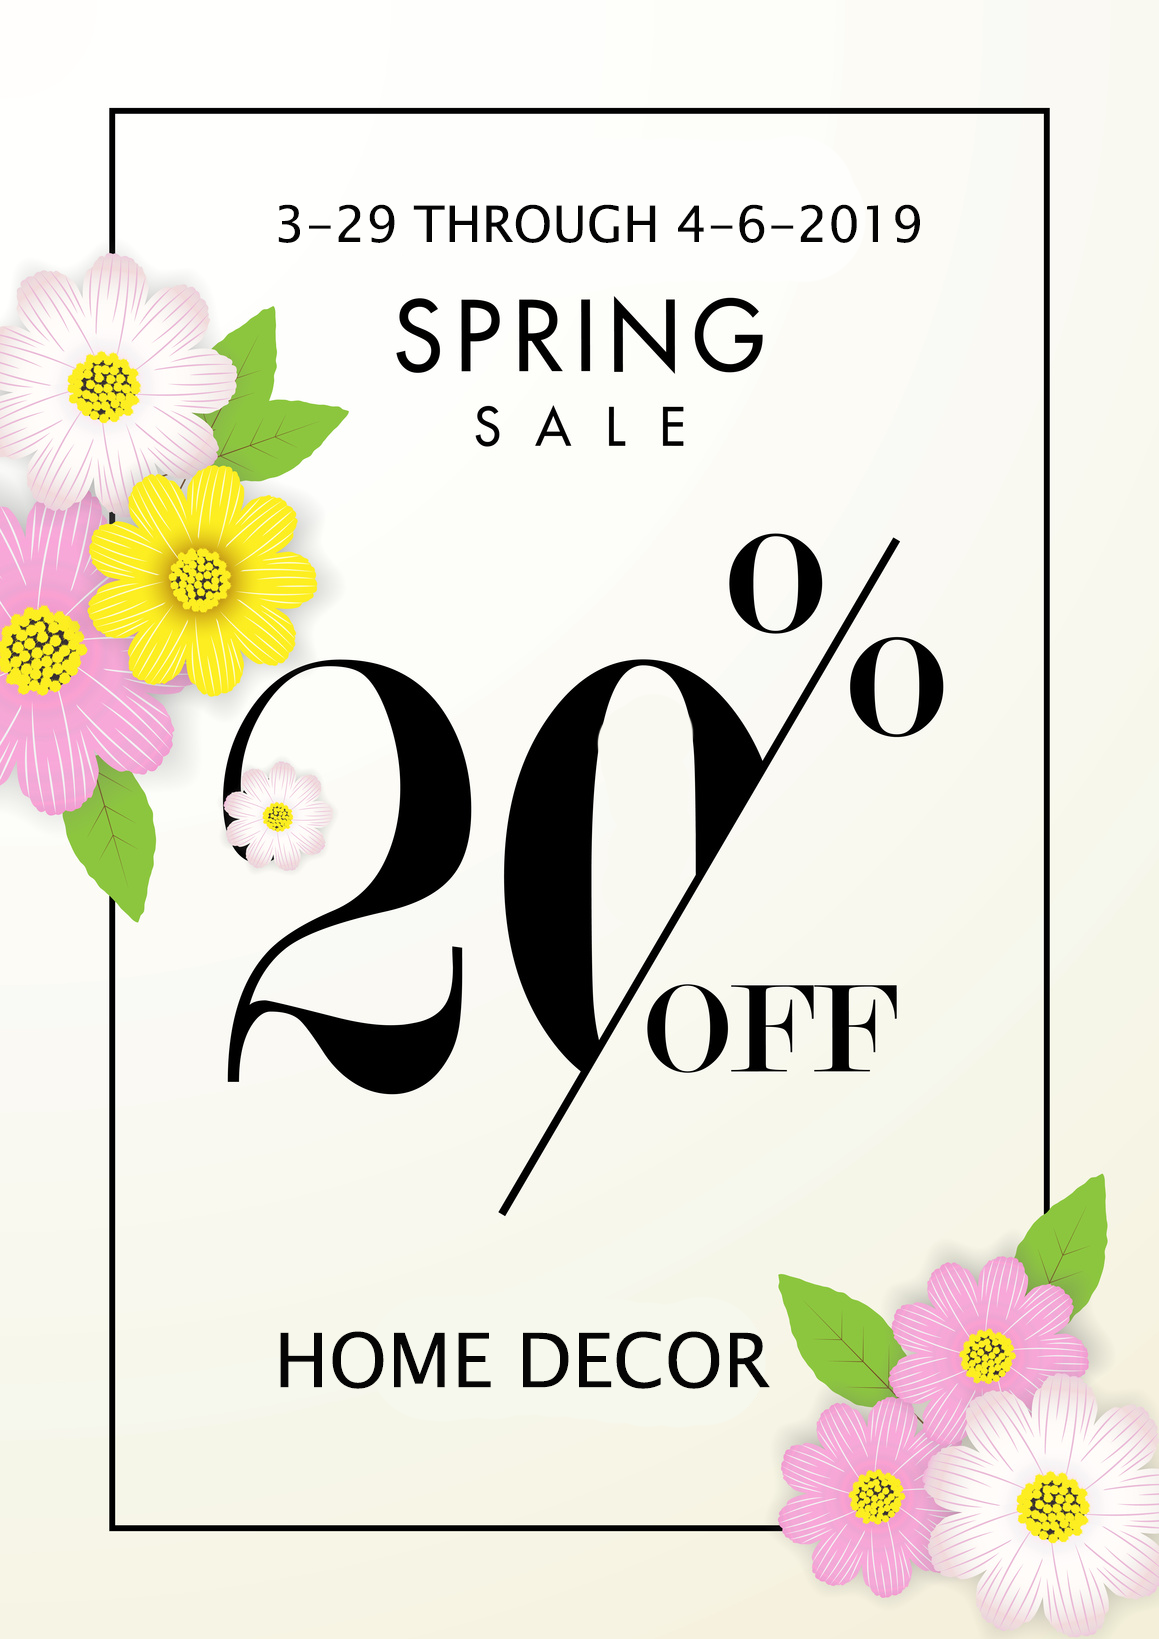 Ready to save big on that spring home decor project or